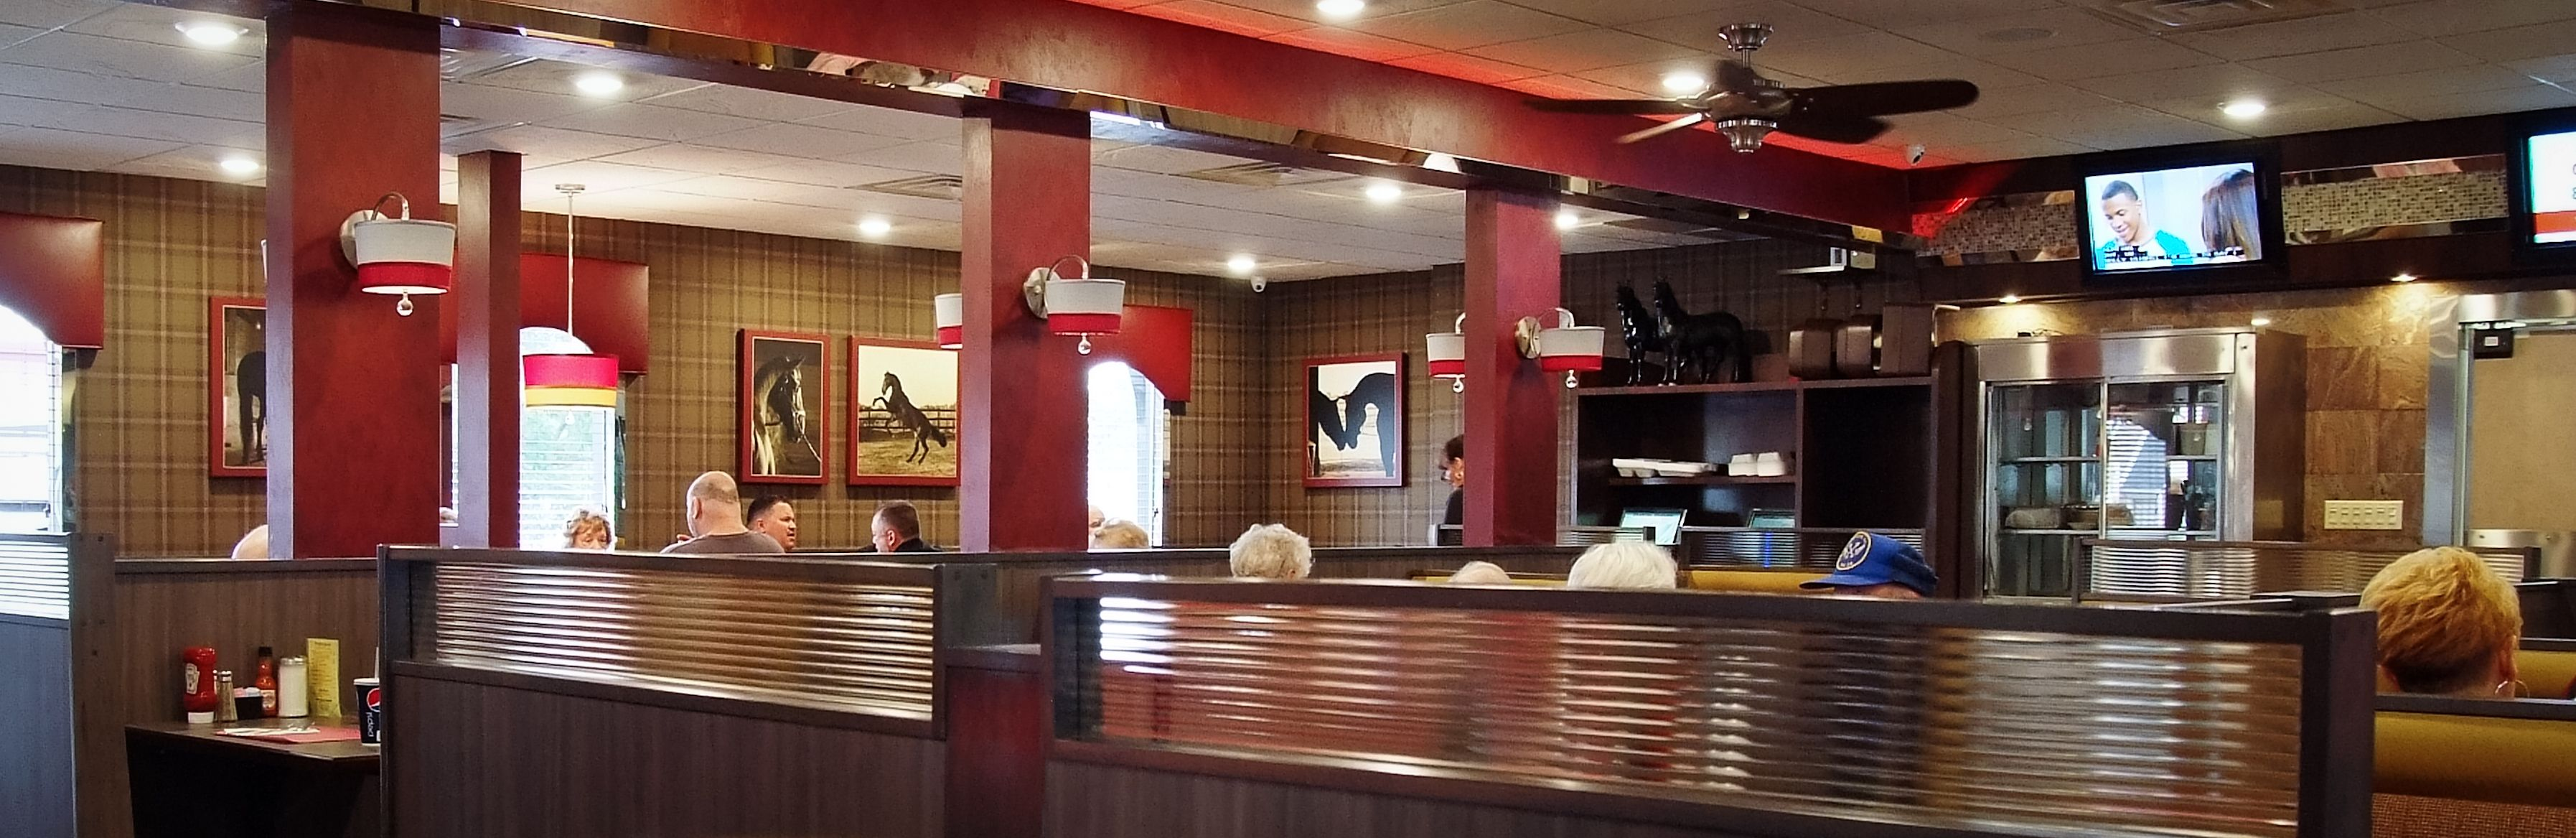 Located On The Black Horse Pike In Mt Ephraim Nj The Black Horse Diner Has Quite The Equestrian Feel Custom Photography From Commercial Design Design Diner